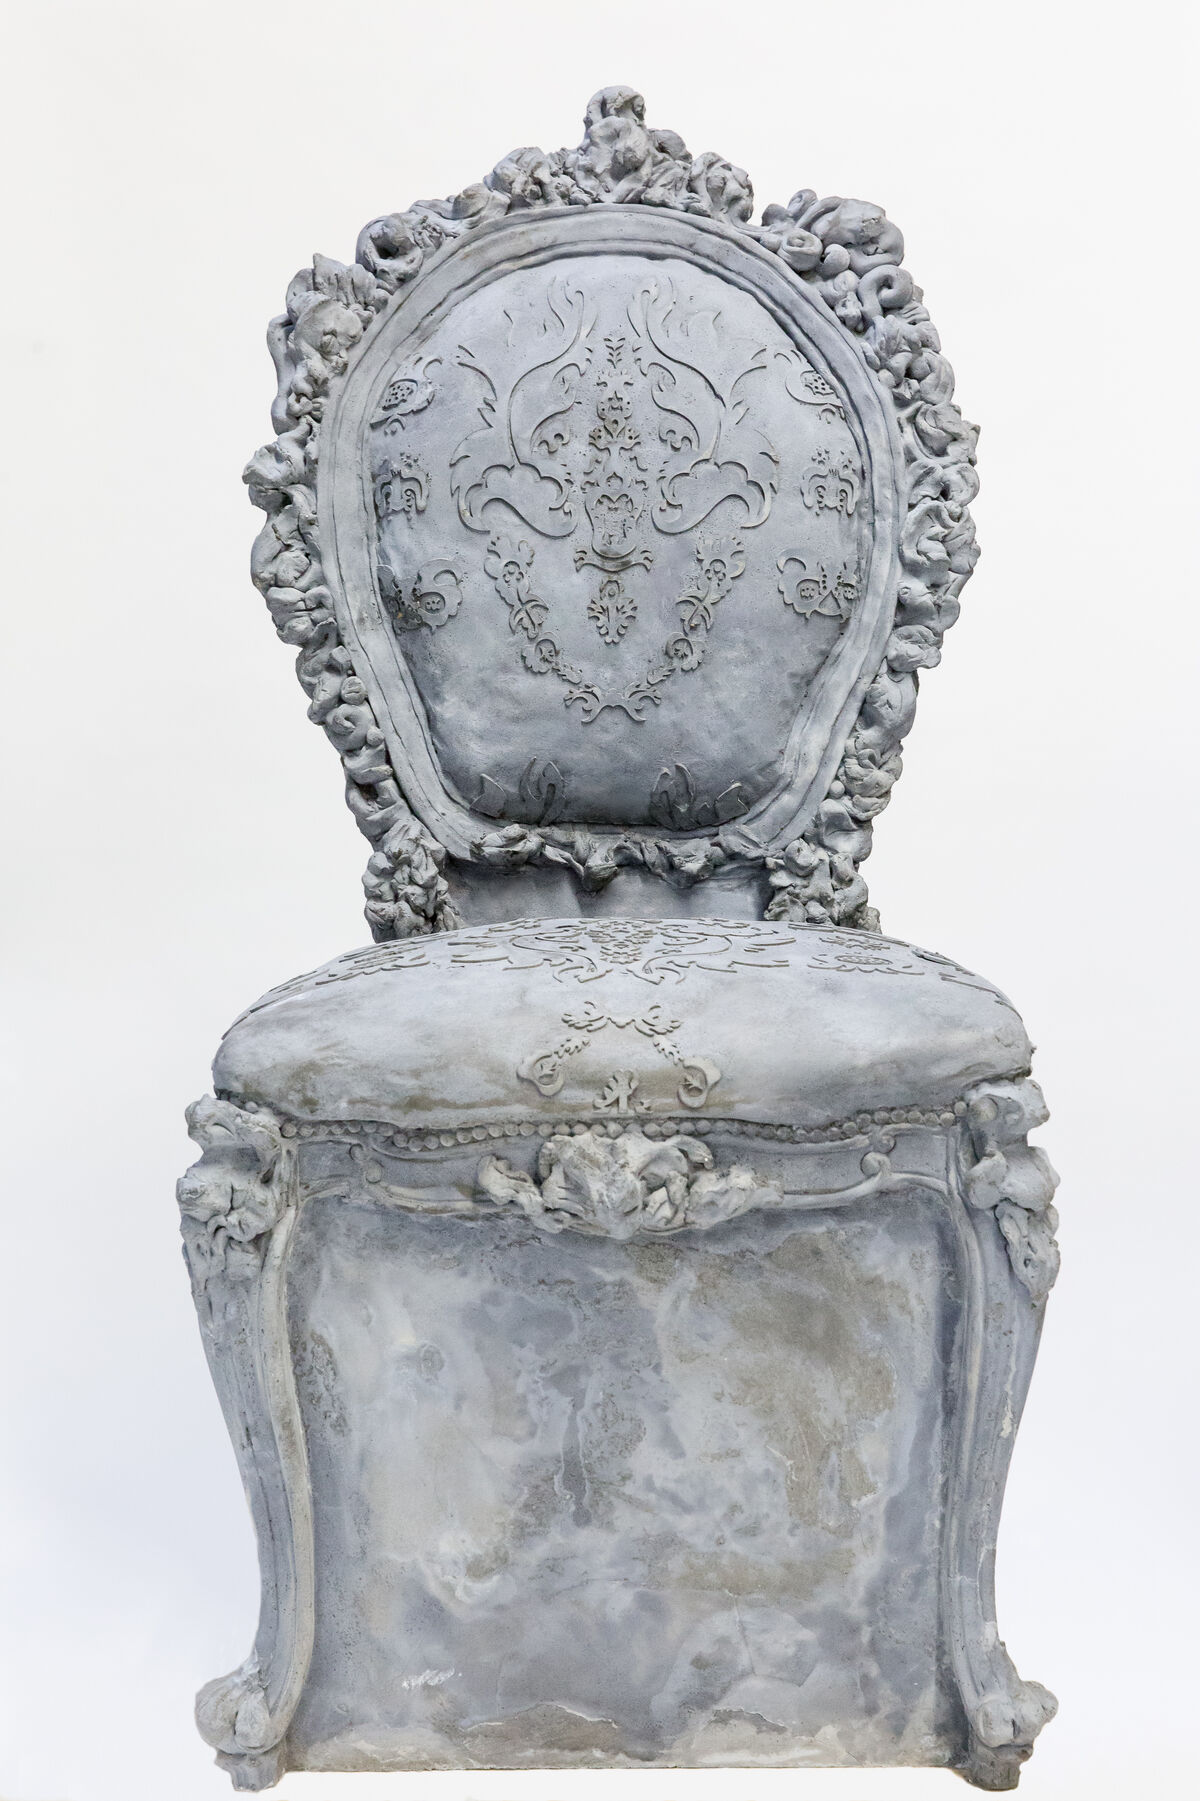 Liz Glynn, chair from Open House, 2017. Cast concrete. Courtesy of the artist and Paula Cooper Gallery. Photo: Liz Ligon, Courtesy of Public Art Fund.